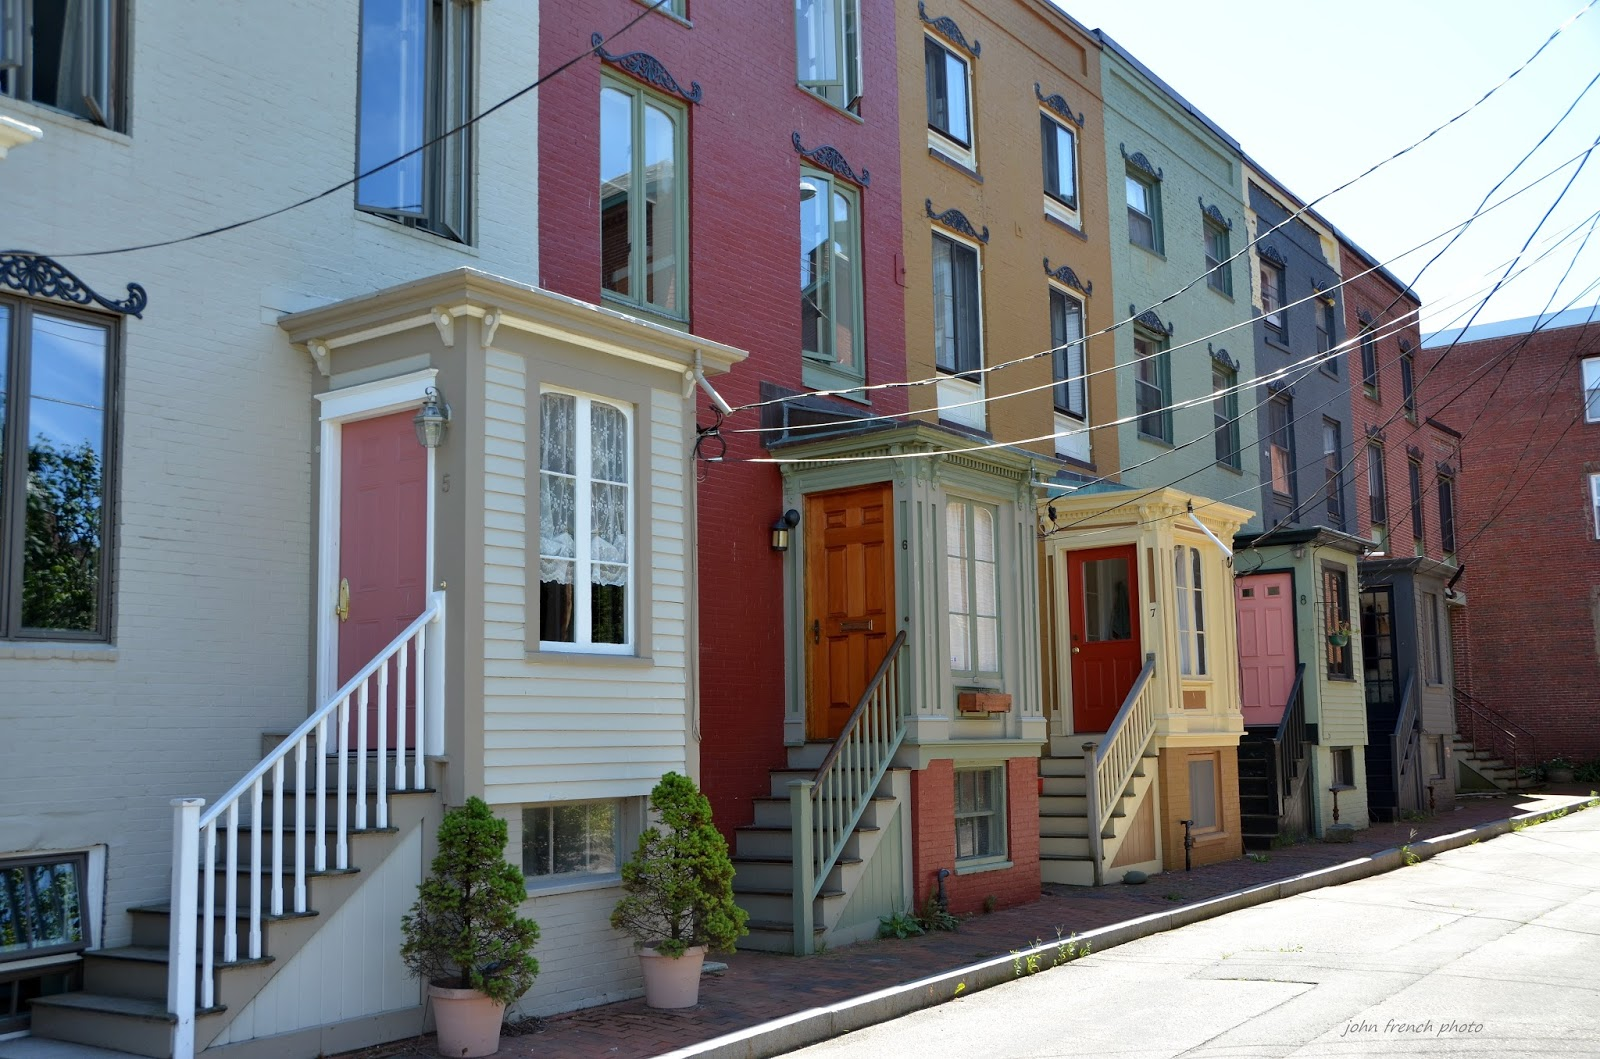 portland maine history 1786 to present blog  row houses at stratton place  portland maine